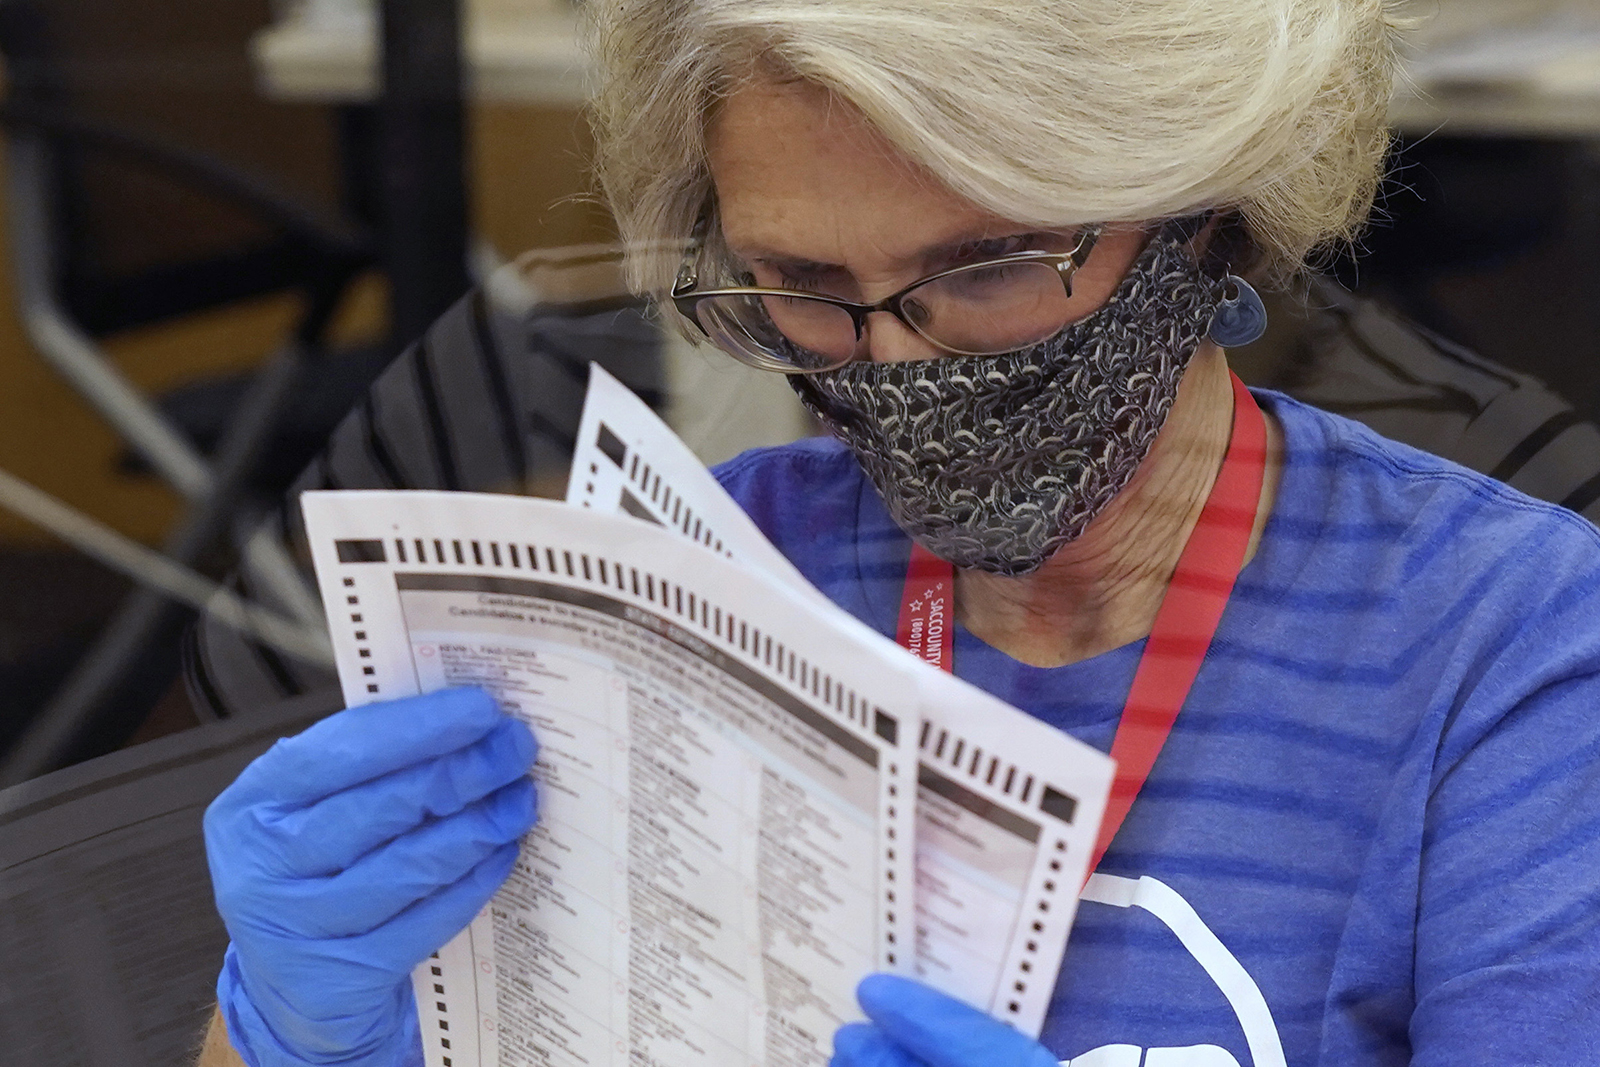 Gerri Kanelos inspects a ballot for damage before they are sent to be tabulated at the Sacramento County Registrar of Voters Office in Sacramento, California on Tuesday, September 14.